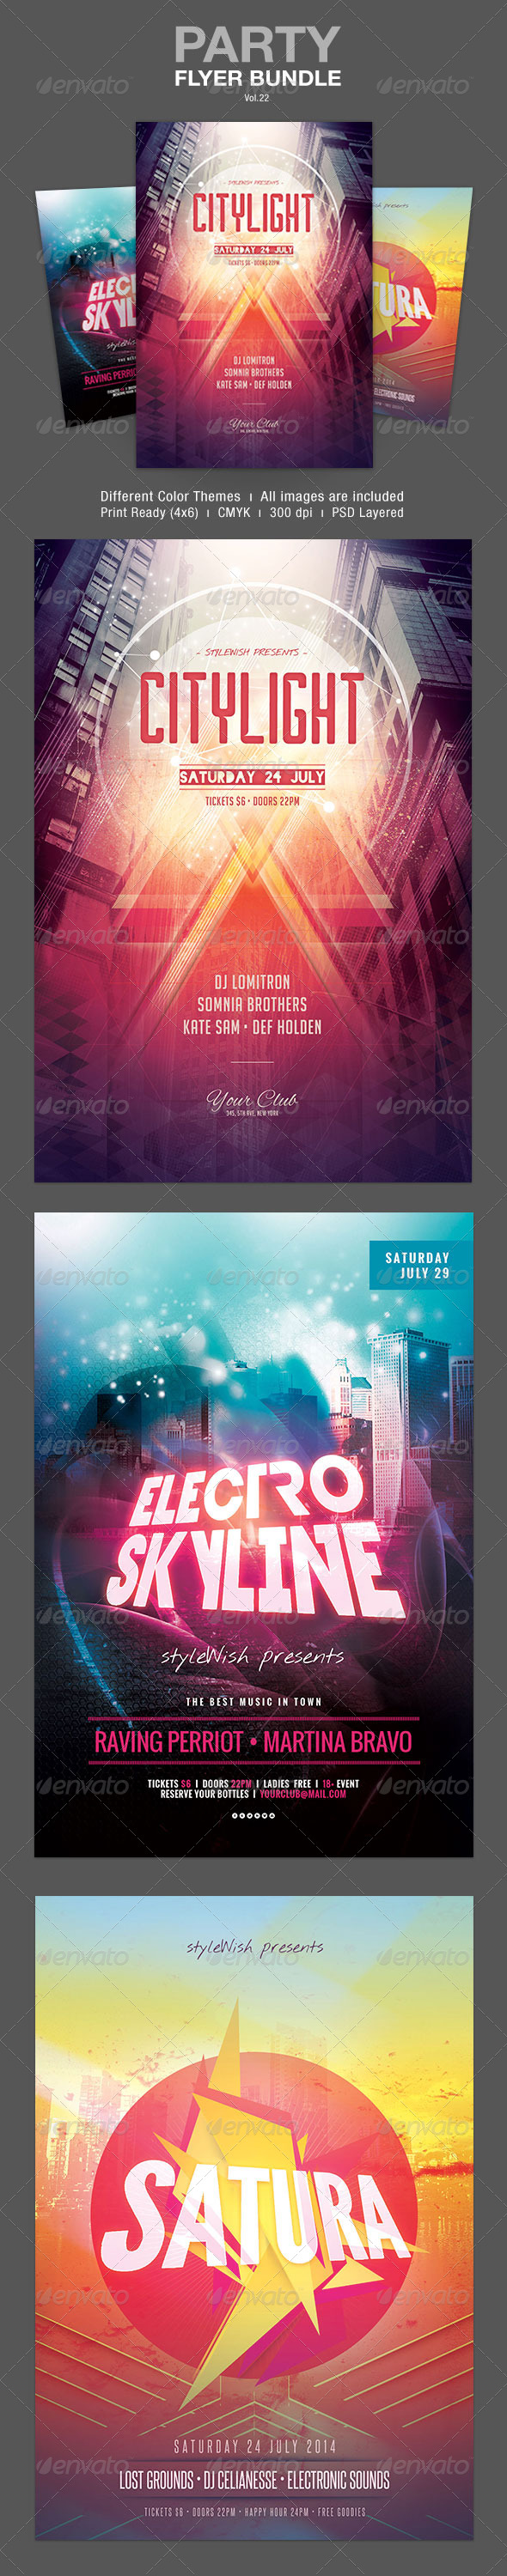 GraphicRiver Party Flyer Bundle Vol.22 8020075